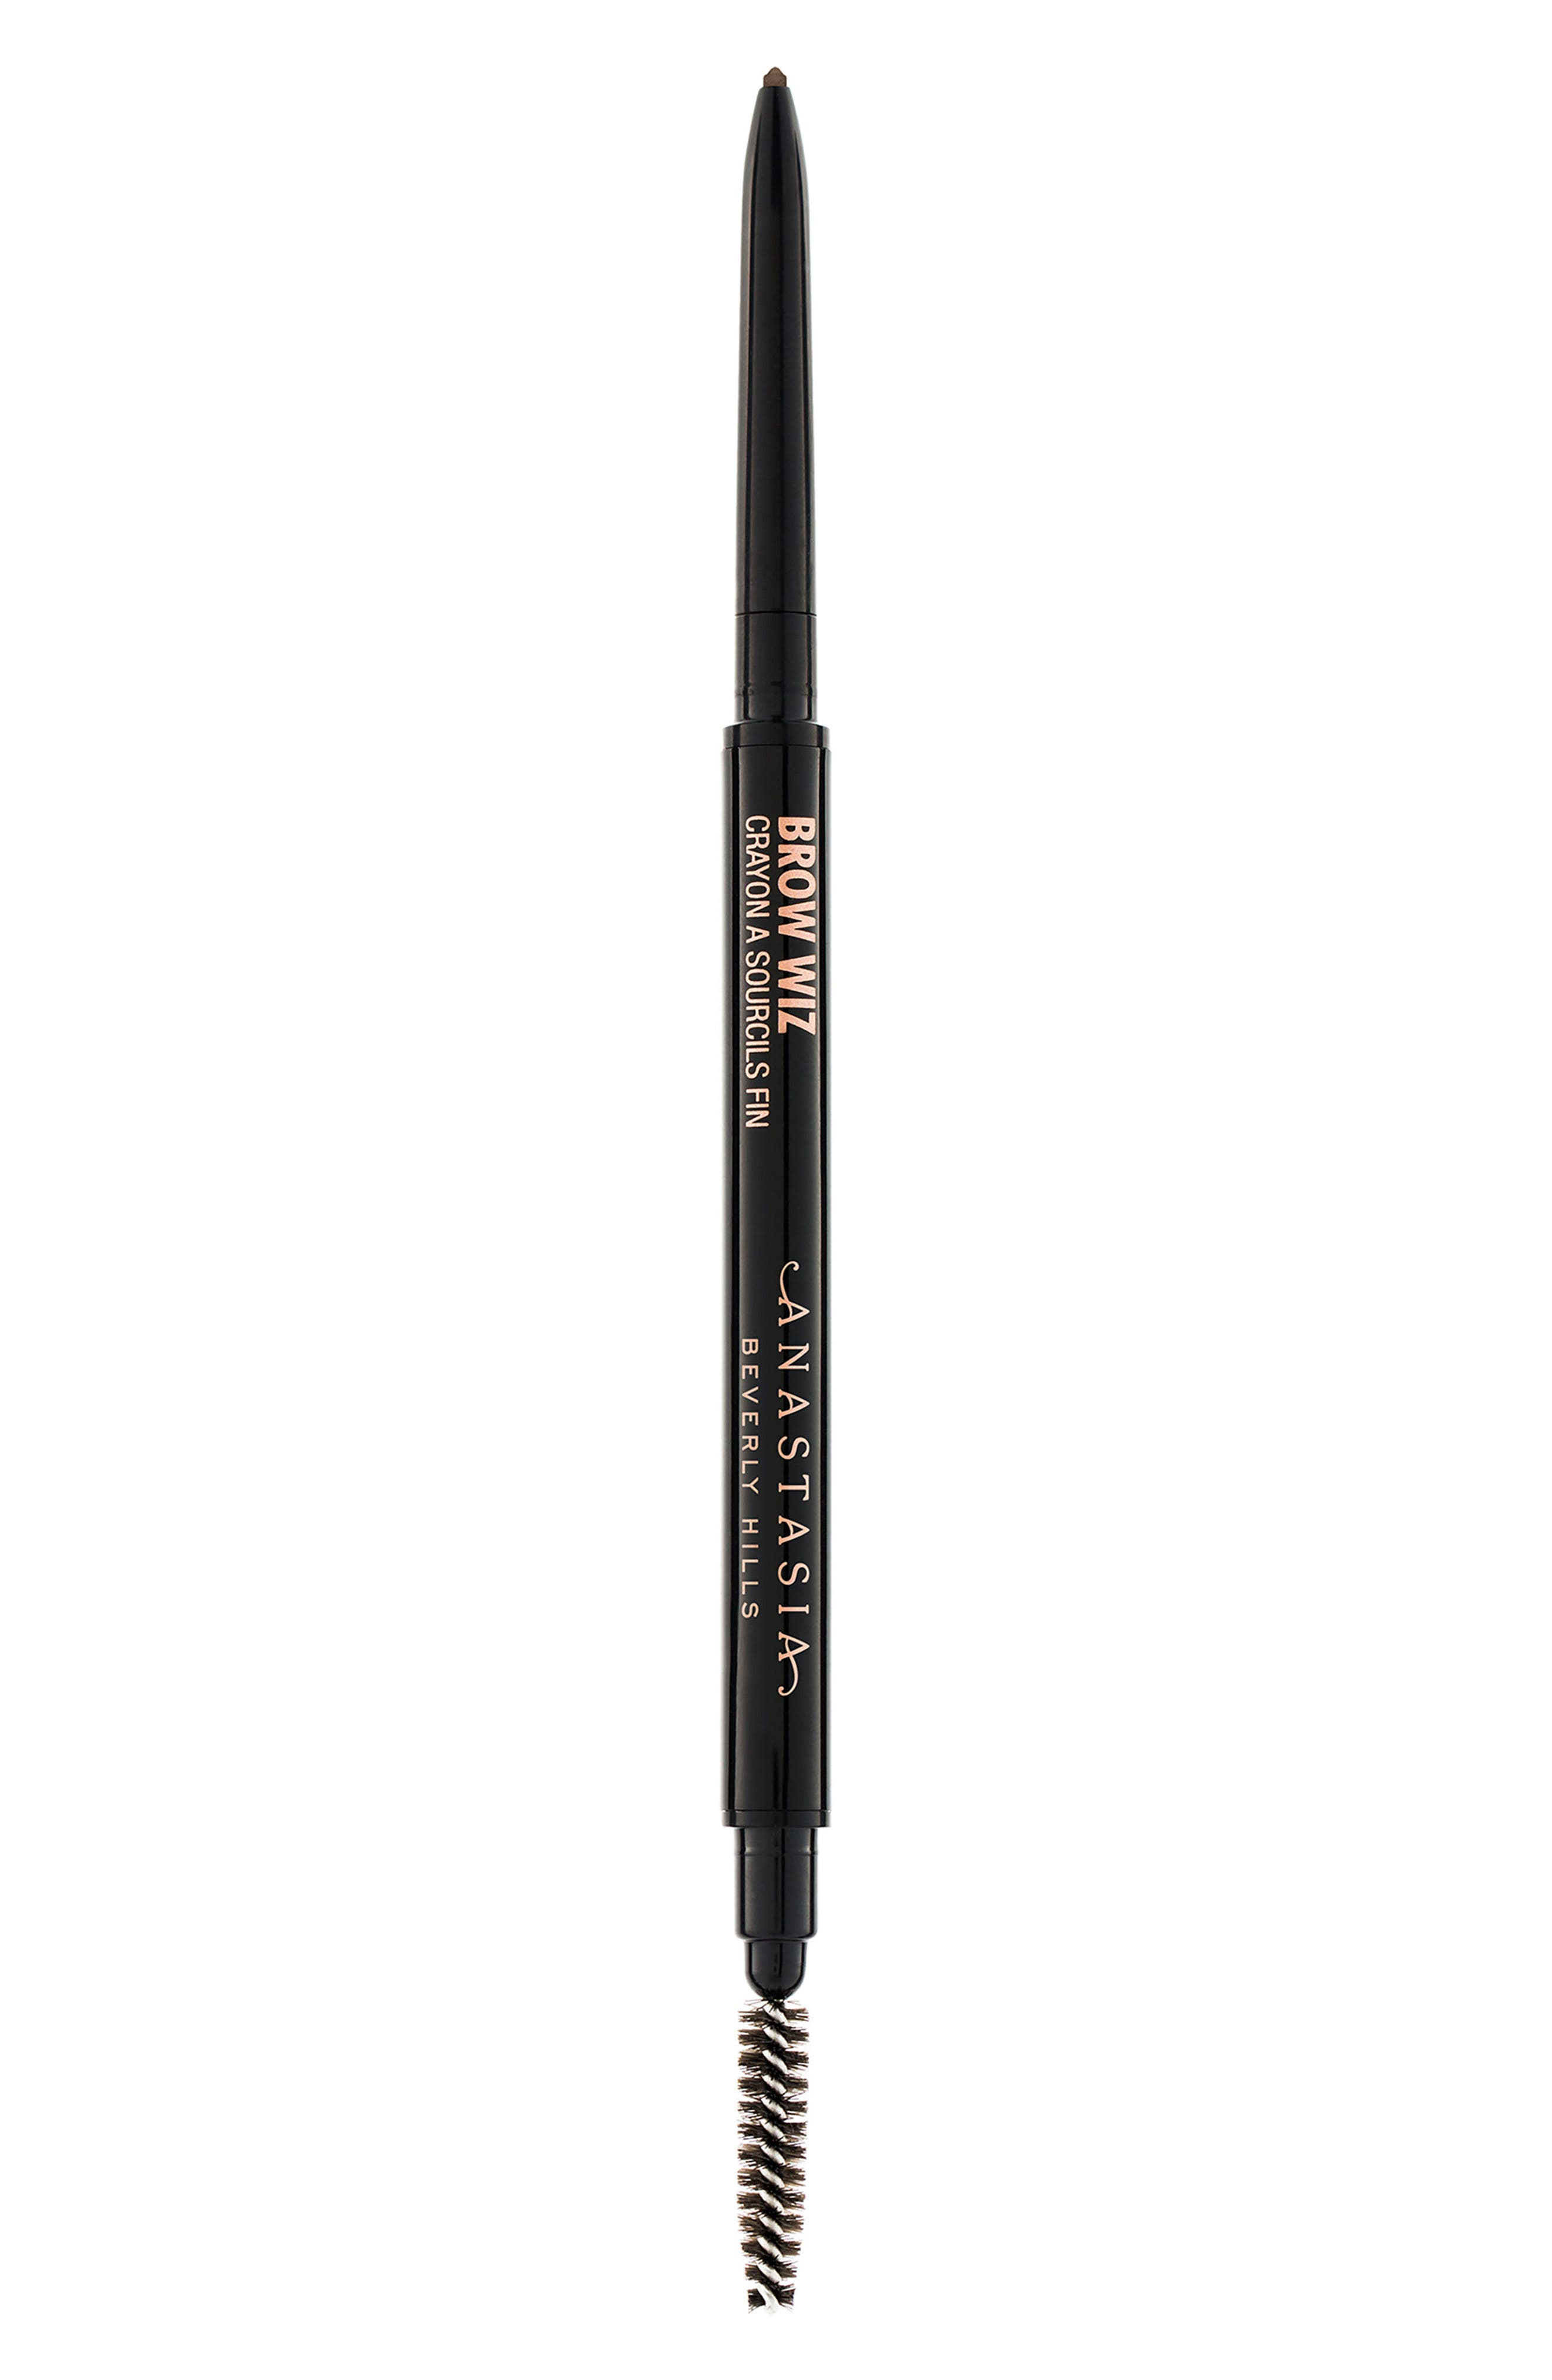 ANASTASIA BEVERLY HILLS, Brow Wiz Mechanical Brow Pencil, Main thumbnail 1, color, TAUPE (ASH BLONDE)